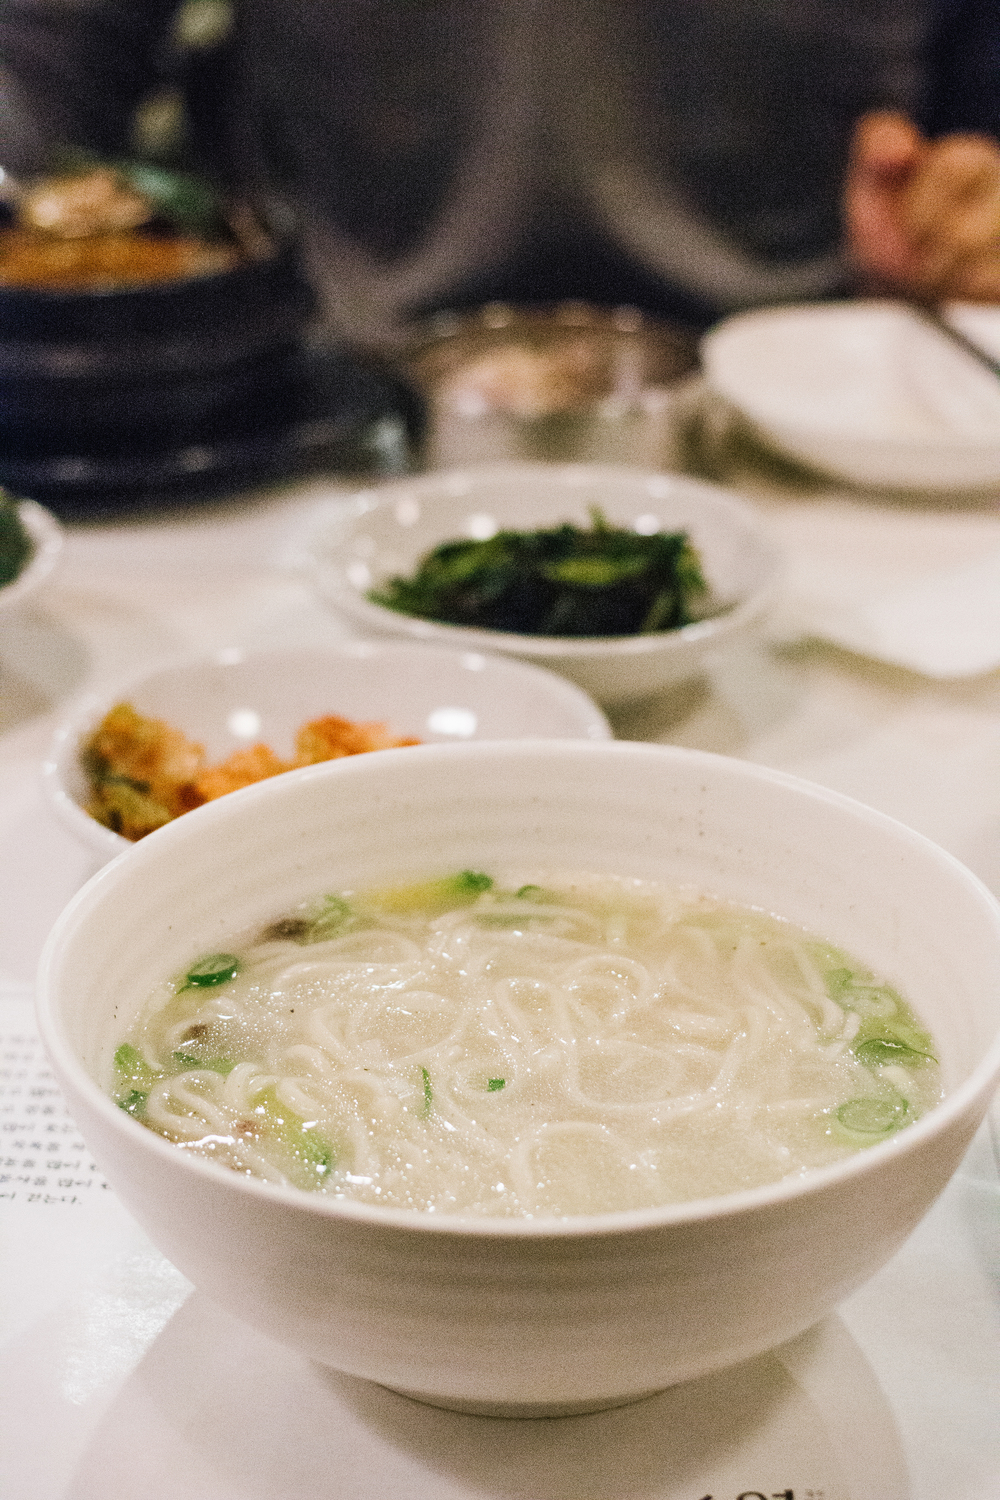 Traditional noodles and dumplings at 안동국시 소람